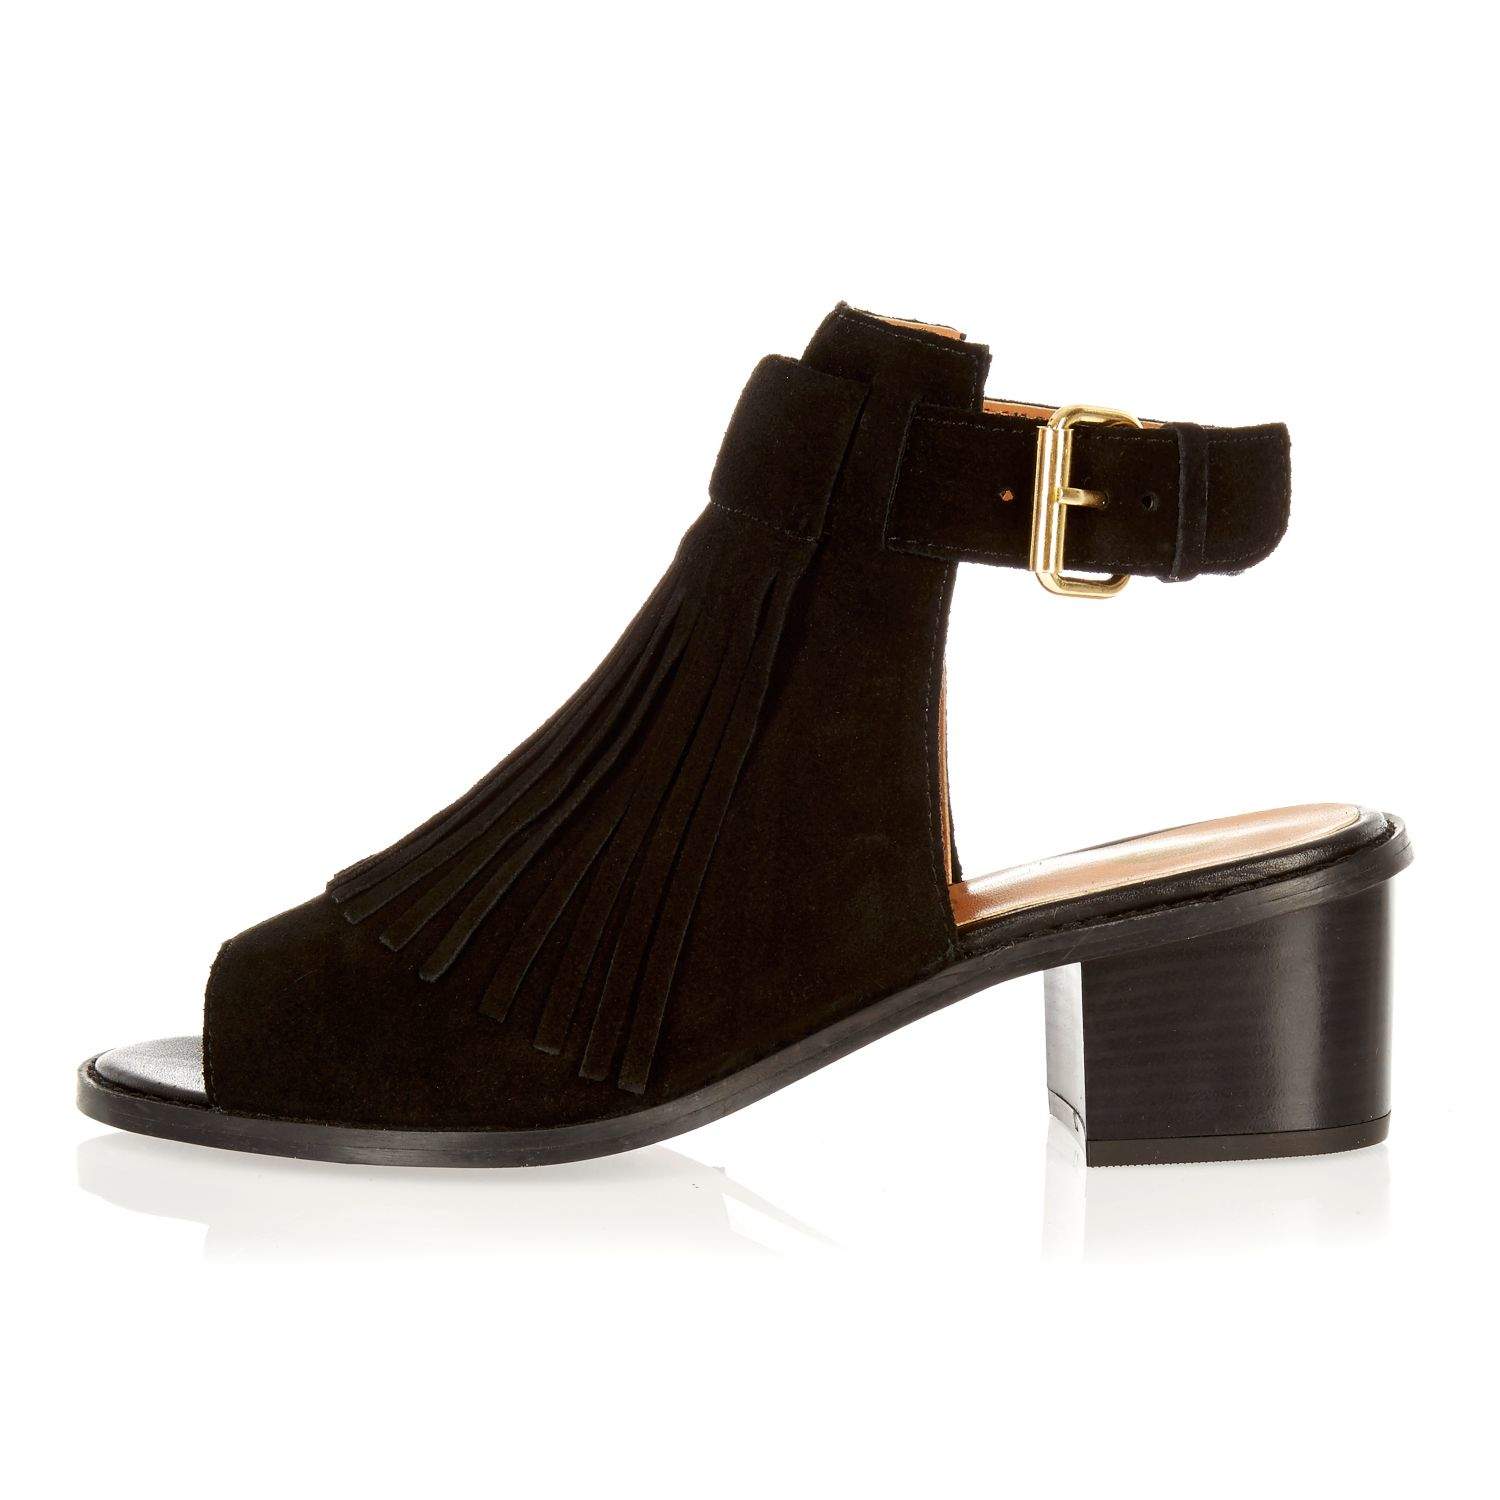 Lyst River Island Black Suede Fringed Block Heel Sandals